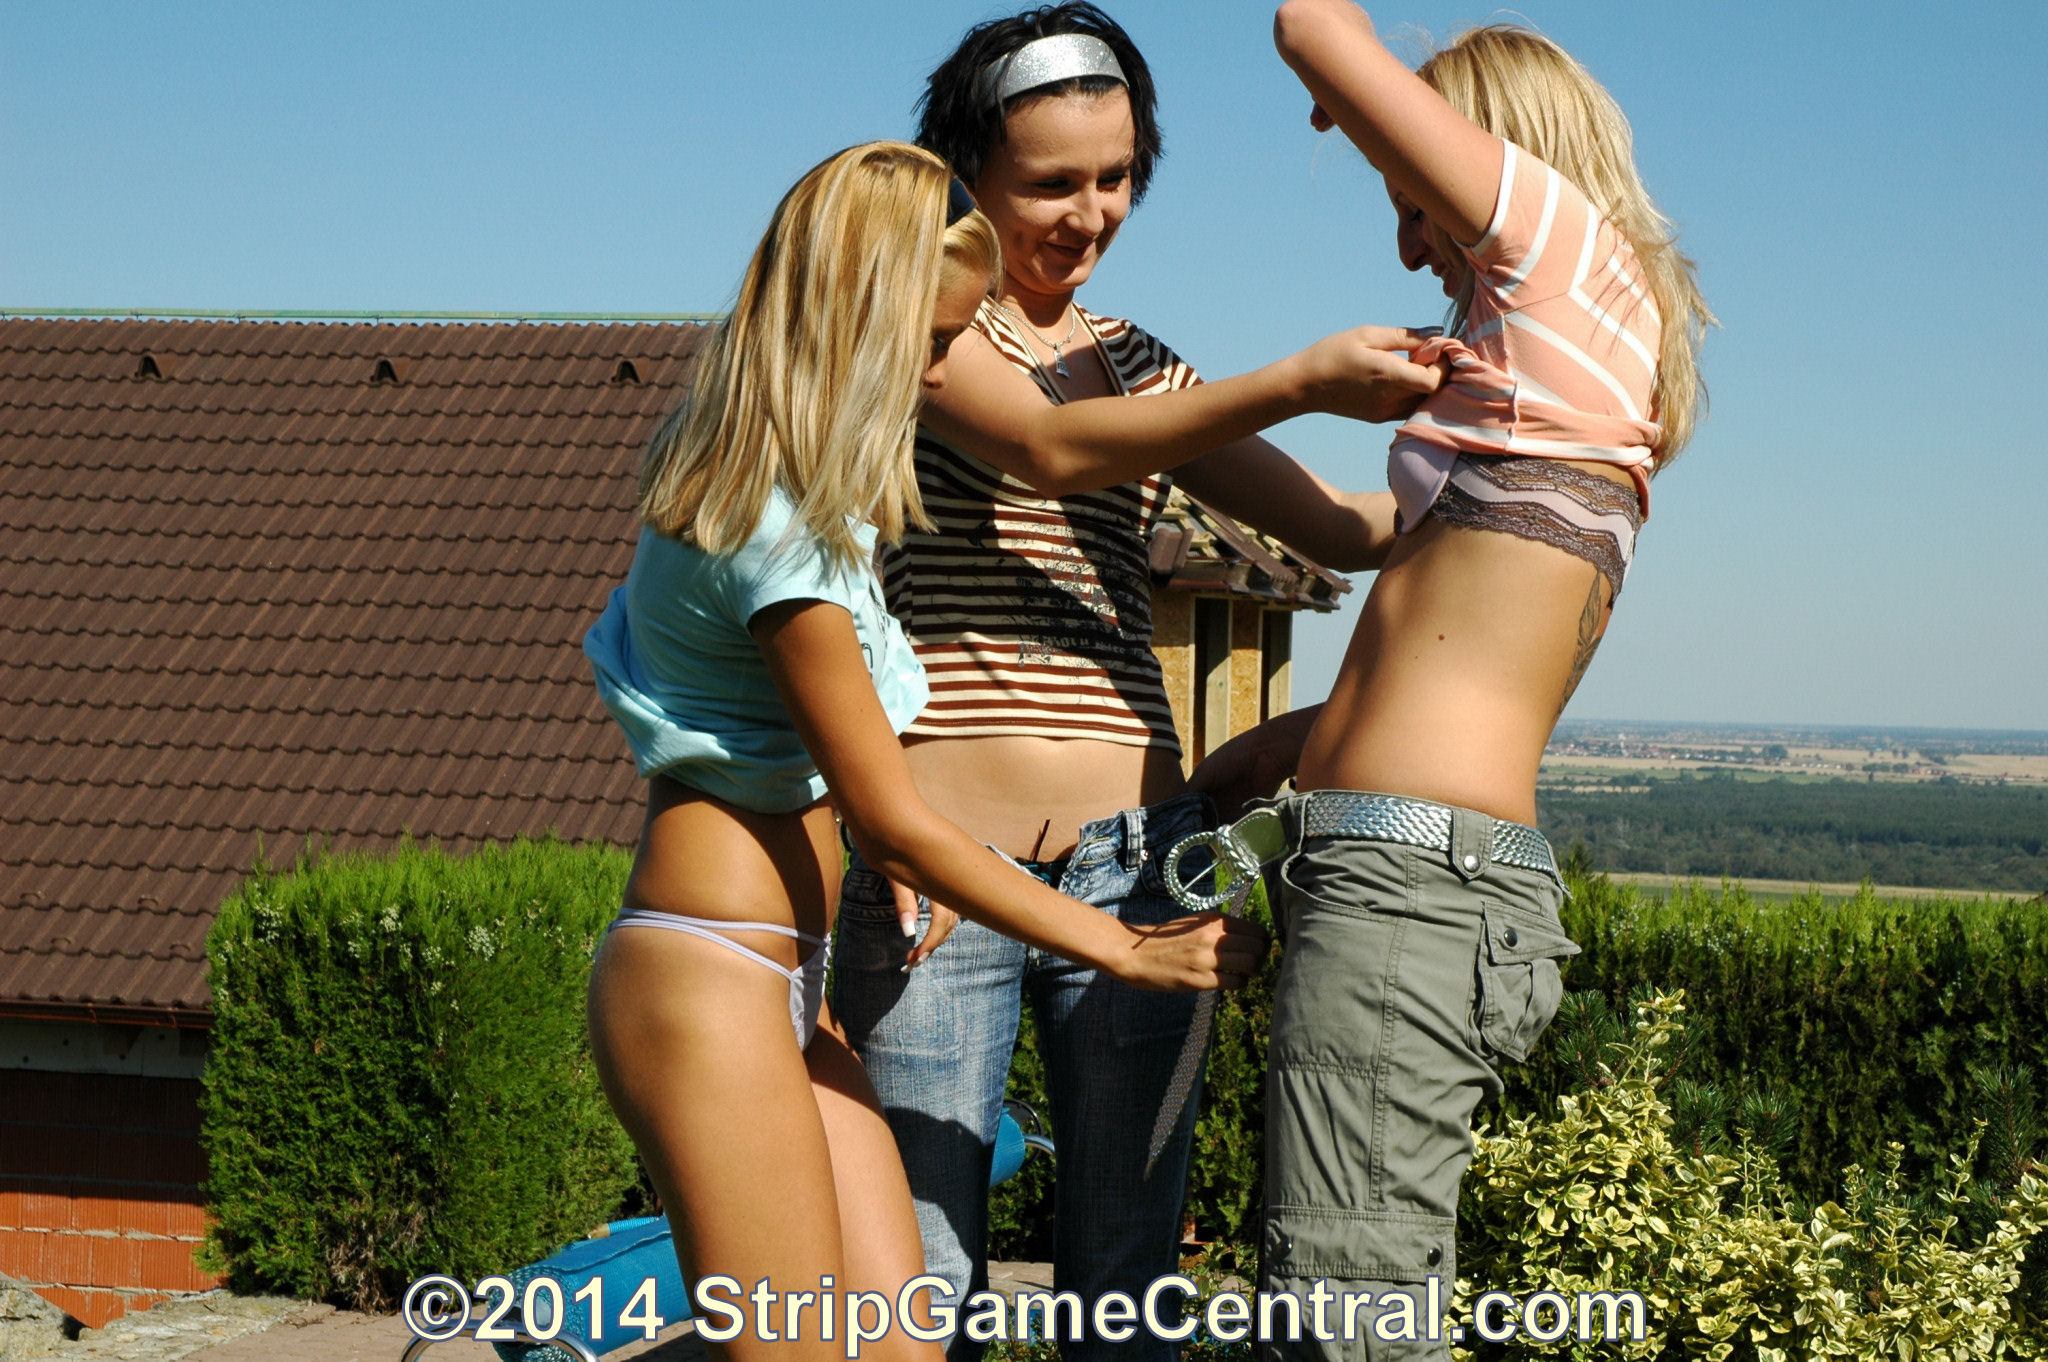 Naked teen girls play fight